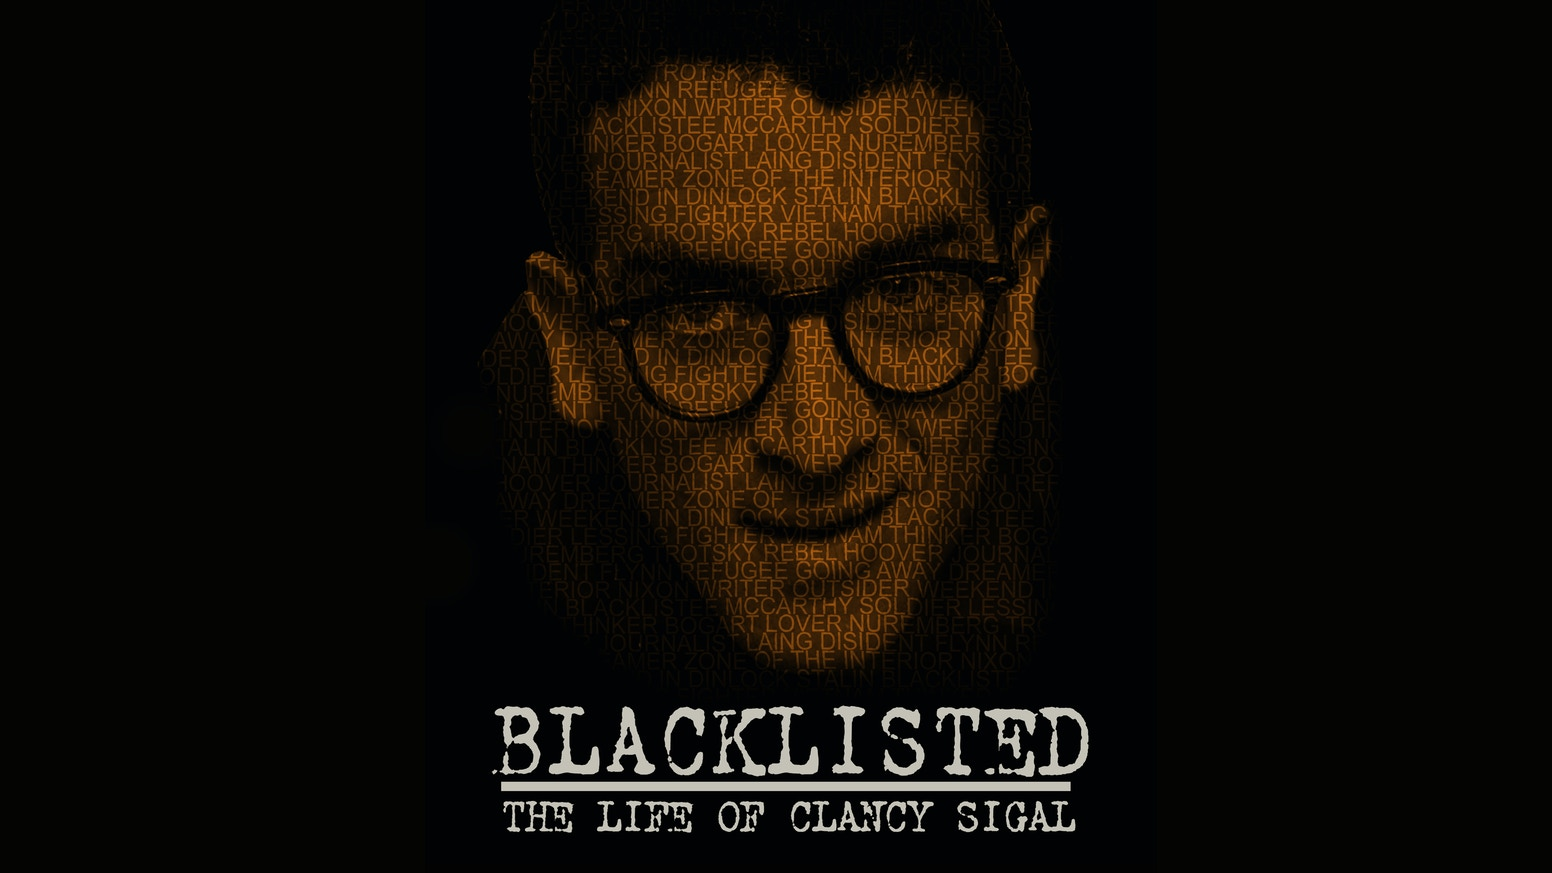 A feature documentary chronicling the incredible adventures of writer, blacklisted Hollywood player & dissident, Clancy Sigal.